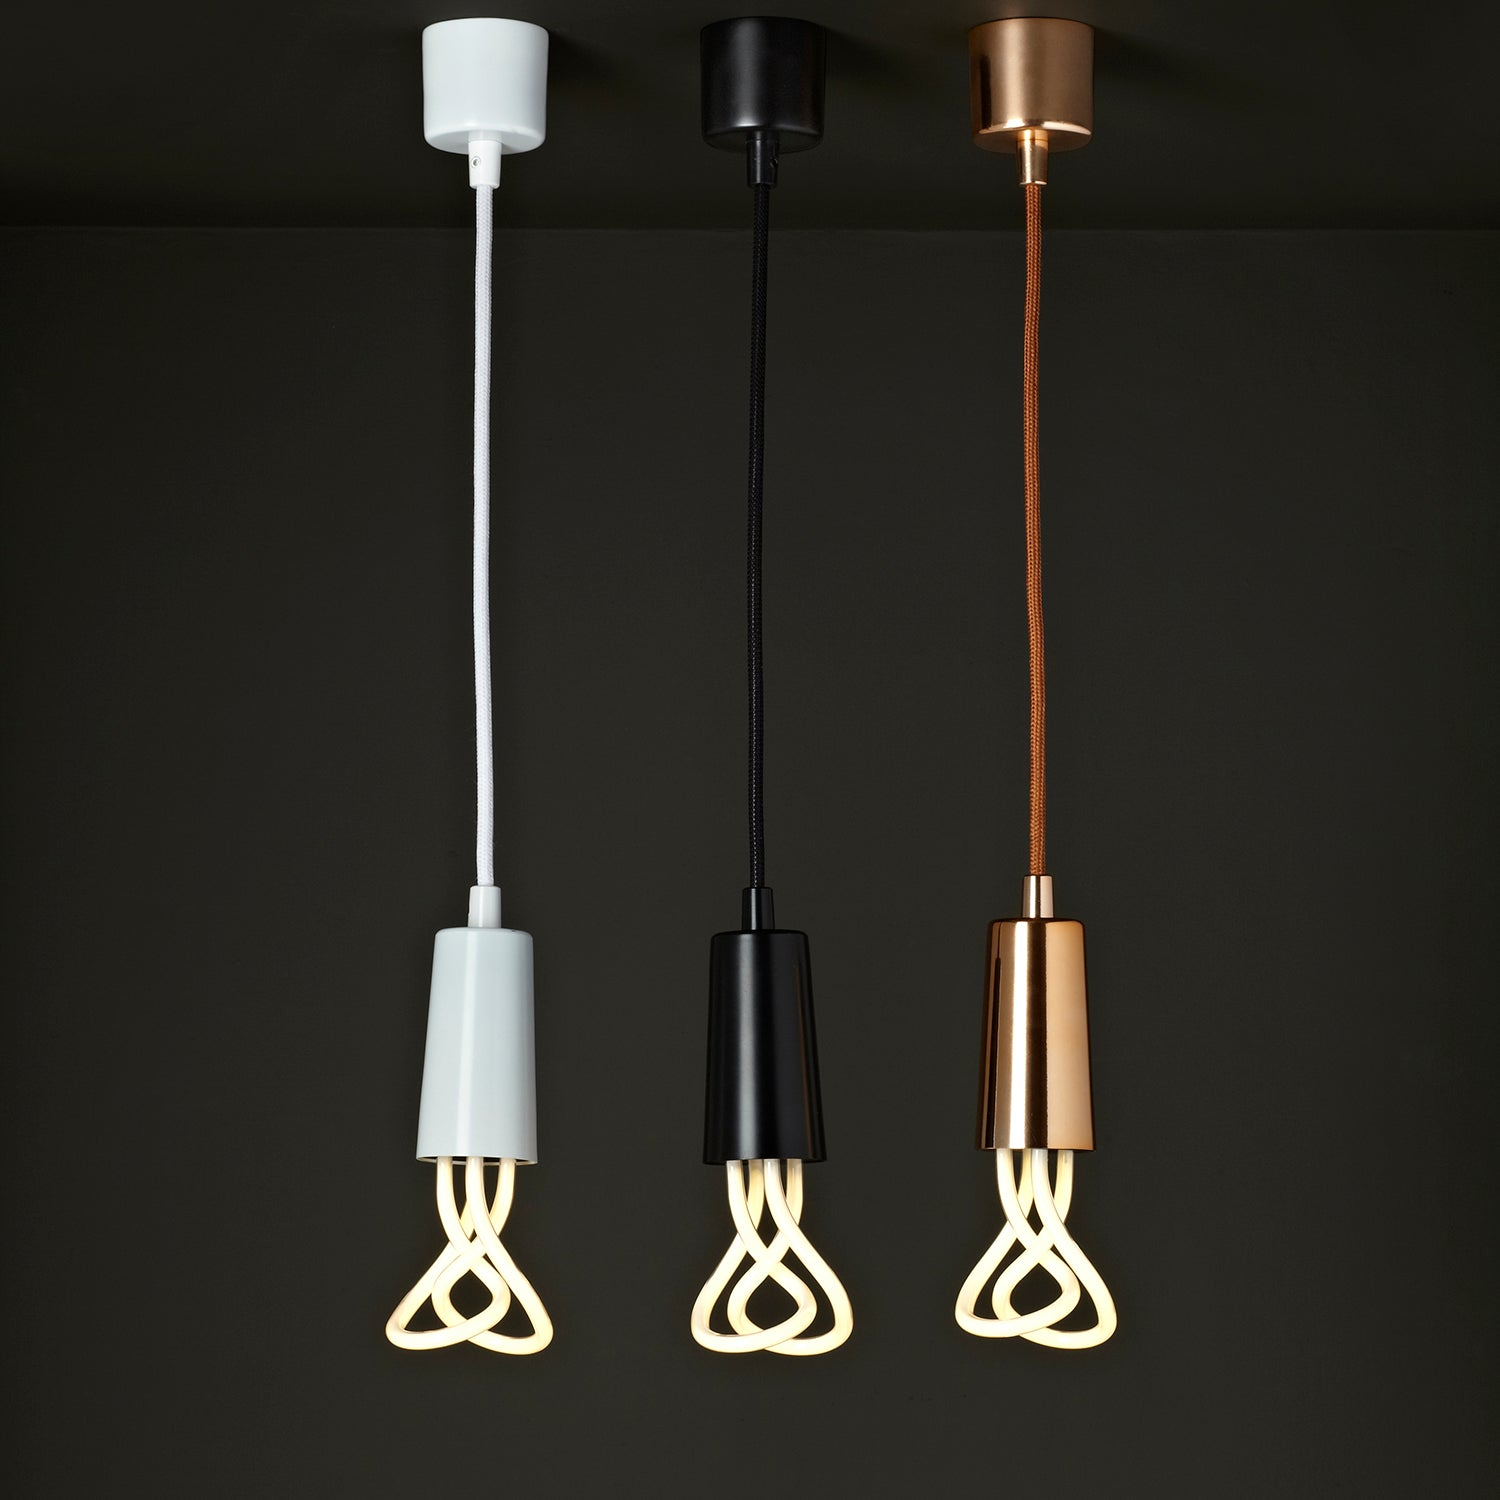 OUTLET - Drop Cap Pendant Set